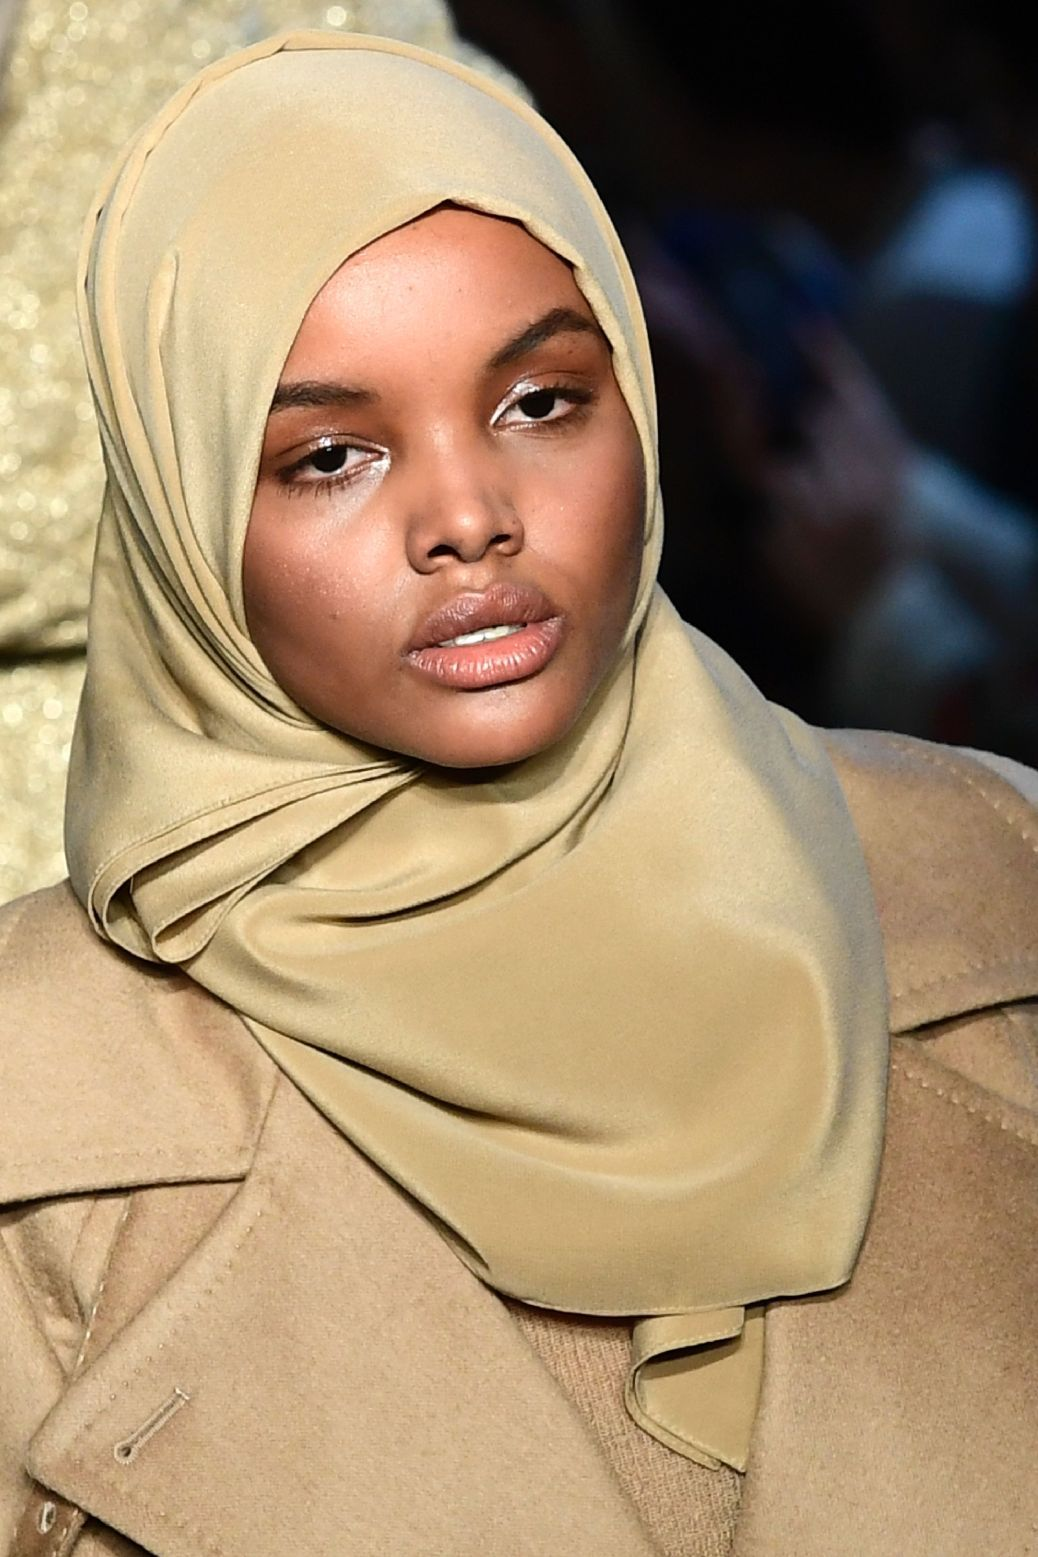 Slay! Halima Aden First Woman To Rock Burkini In Sports